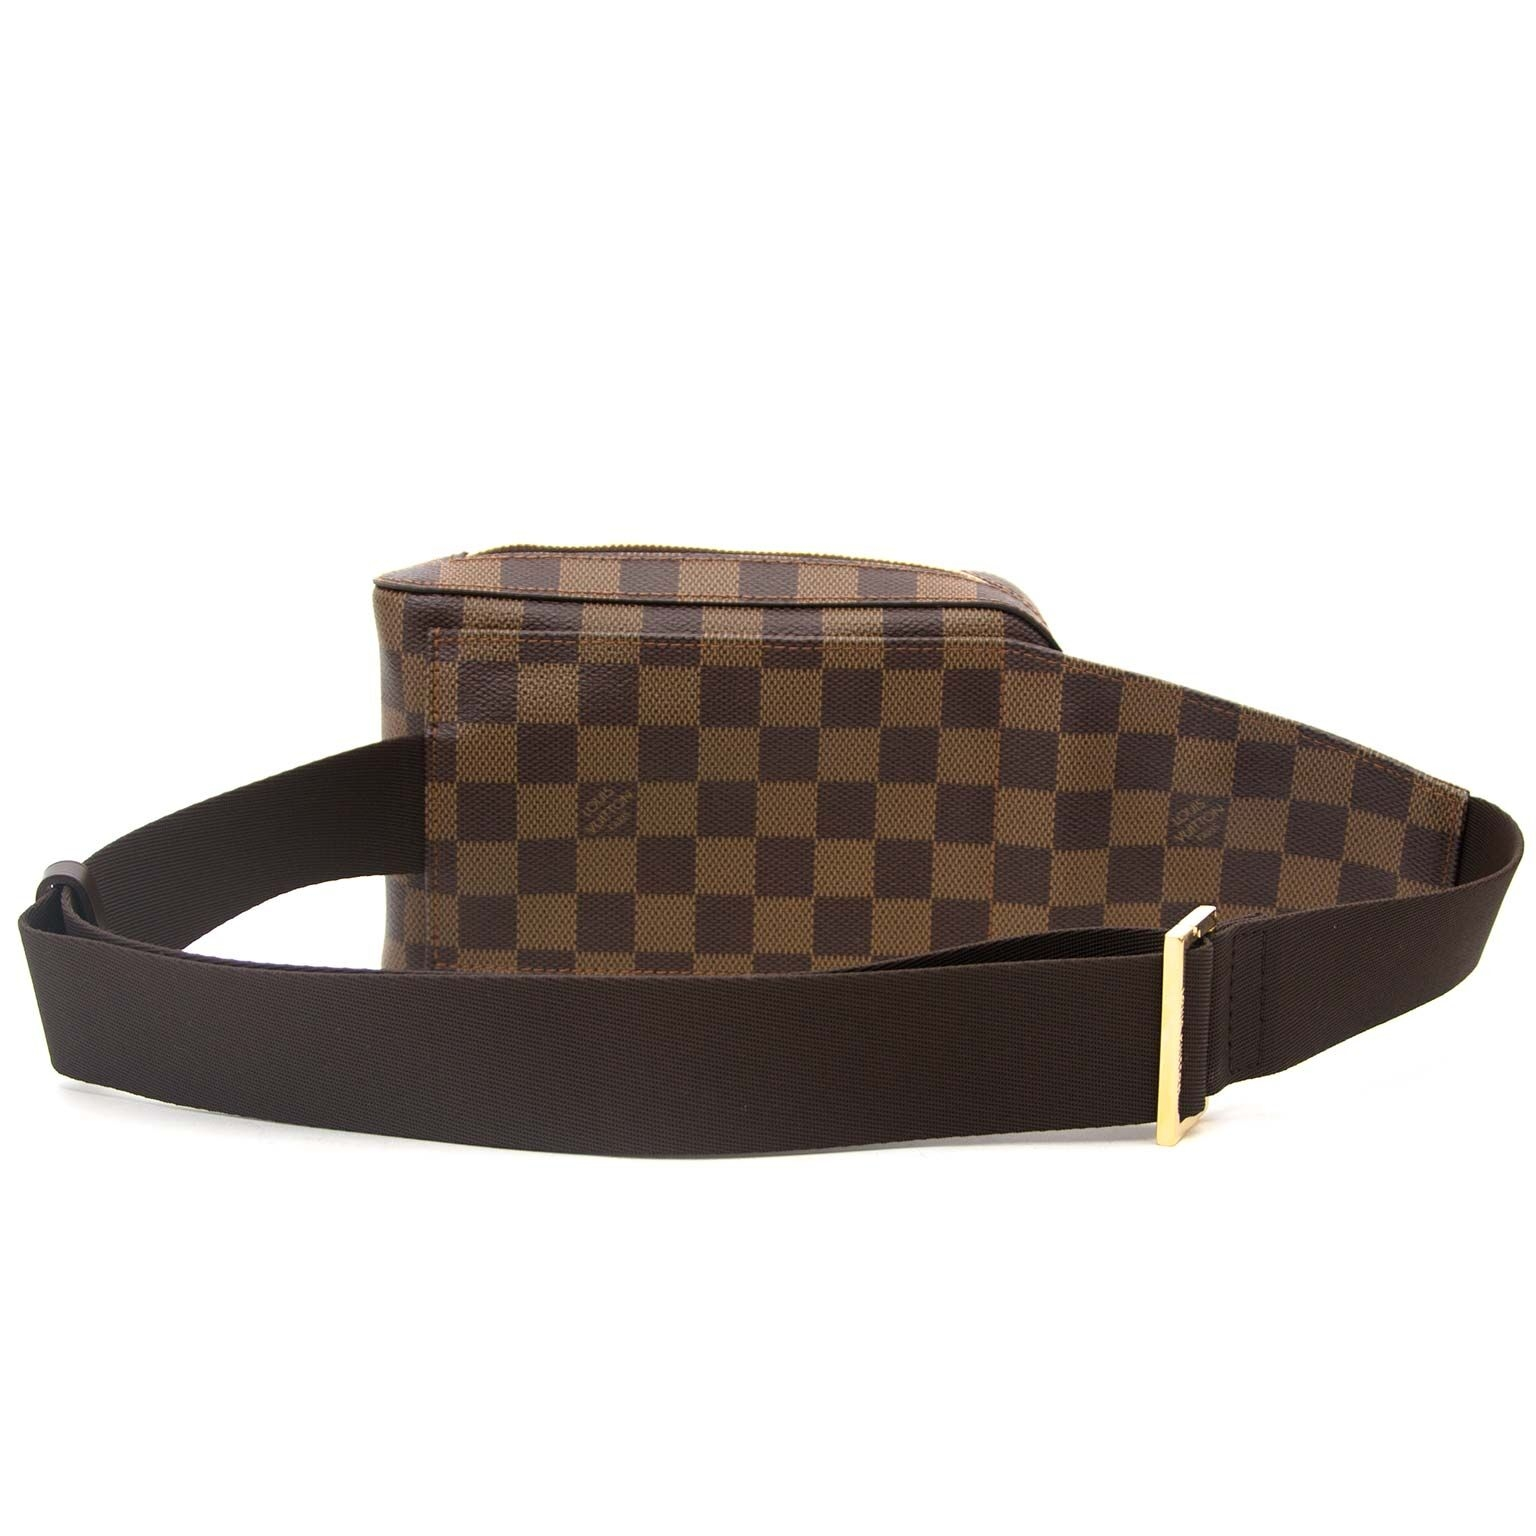 5c9937260e67 koop Louis Vuitton Geronimos Damier bij labellov en betaal veilig online  buy Louis Vuitton Geronimos Damier en pay save online